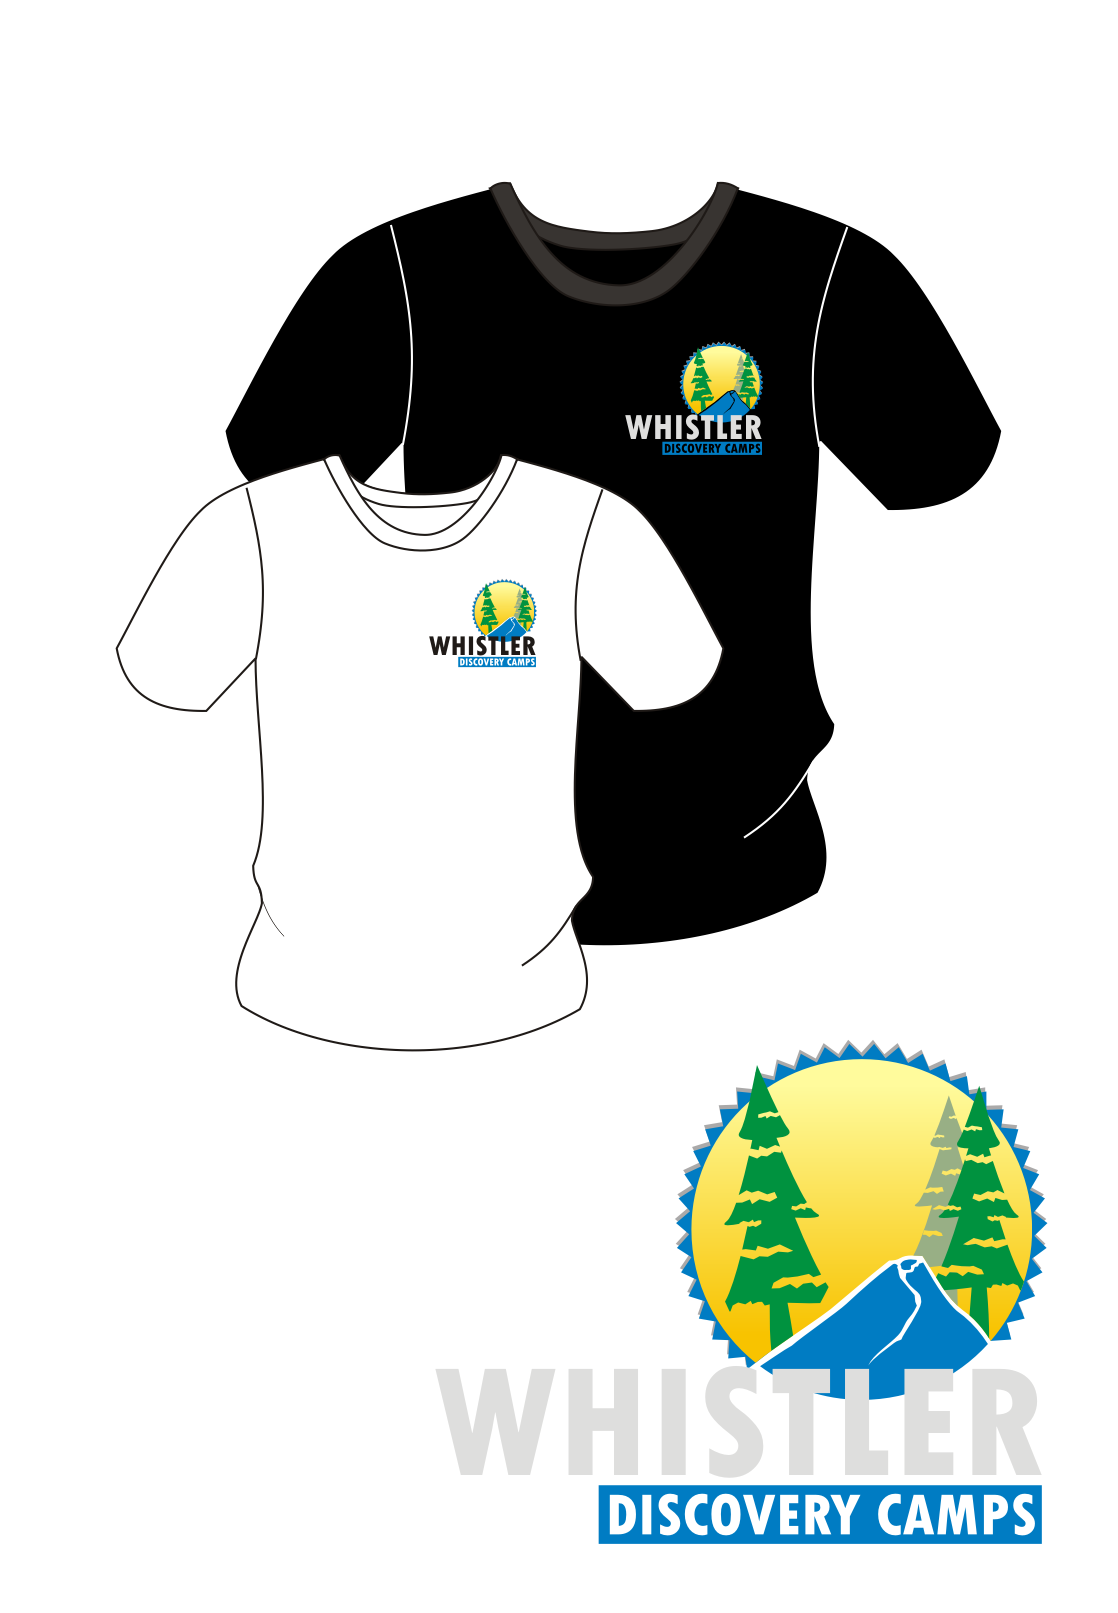 Logo Design by Nthus Nthis - Entry No. 59 in the Logo Design Contest Captivating Logo Design for Whistler Discovery Camps.